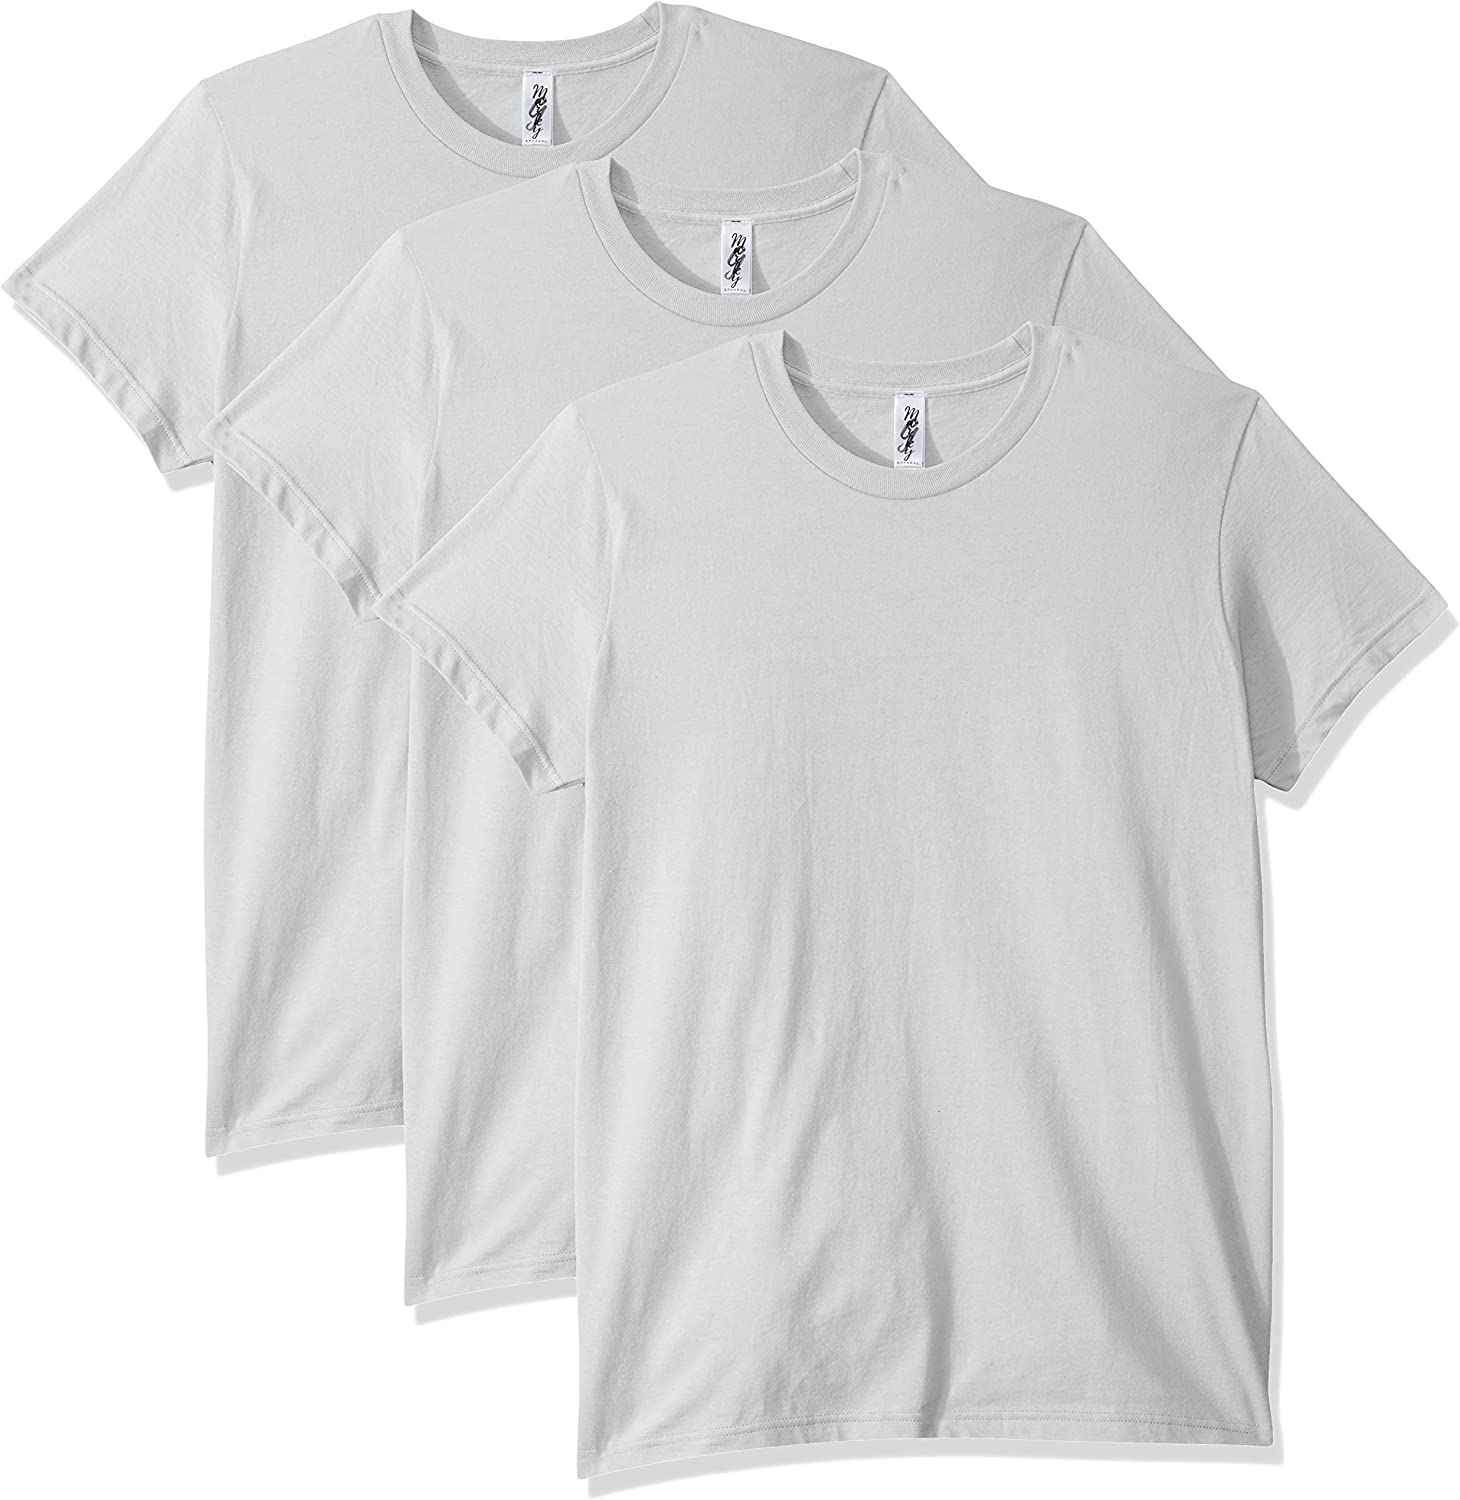 Marky G Apparel Women's Fine Jersey Pack Max 45% OFF Super special price 3 Sleeve T-Shirt Short